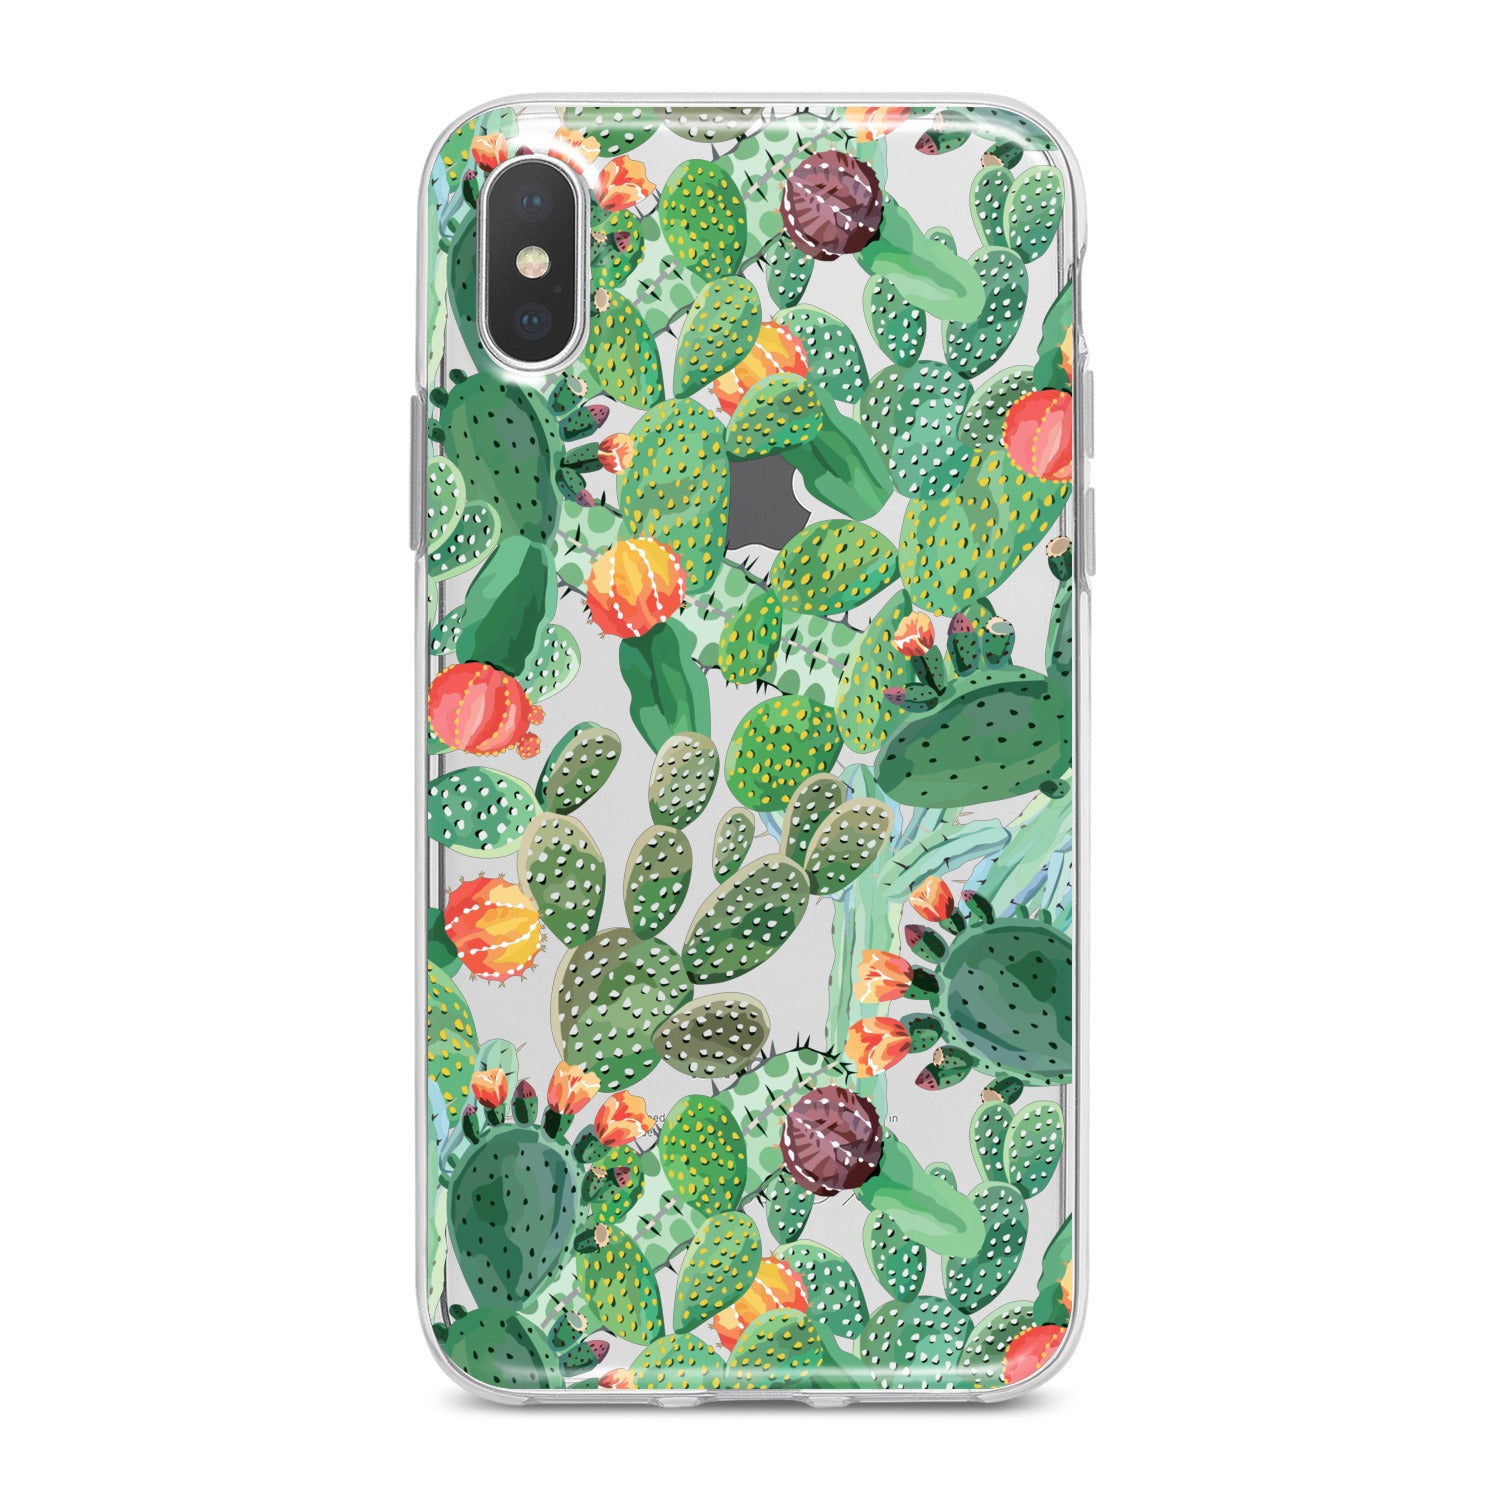 Lex Altern Beautiful Cactuses Print Phone Case for your iPhone & Android phone.